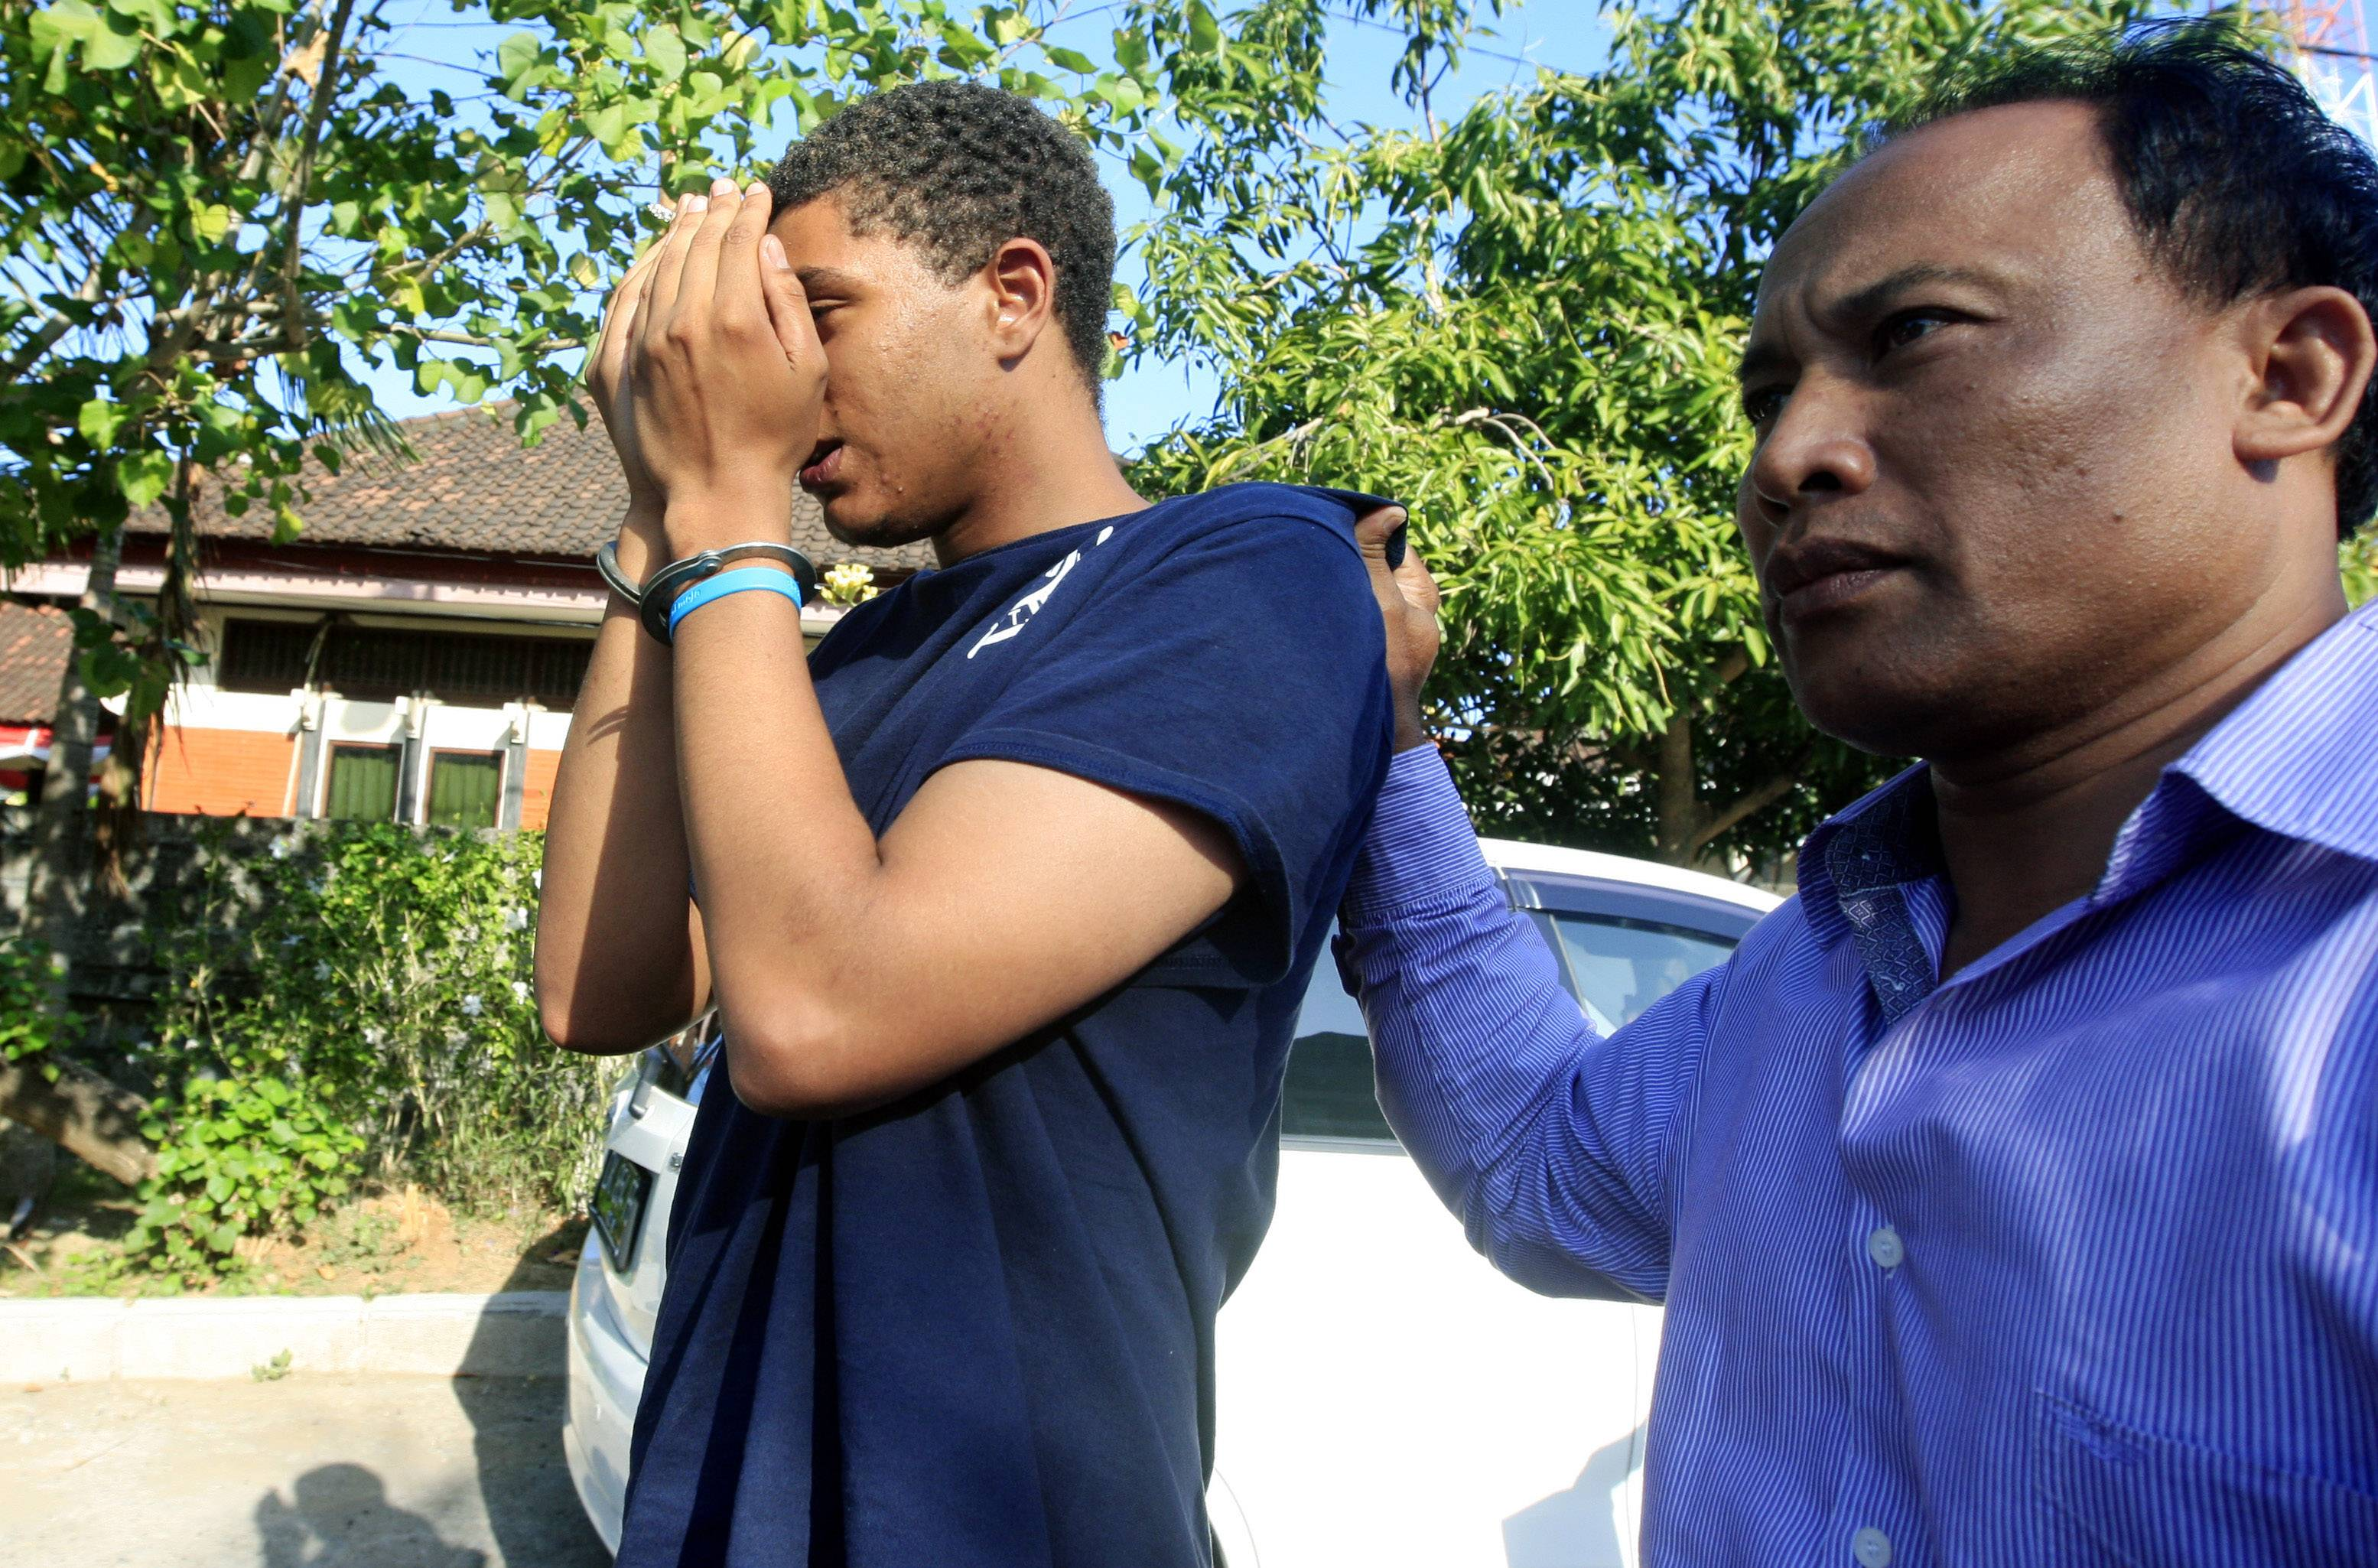 Associated PressAn Indonesian police officer escorts Tommy Schaefer, left, as he is brought to the police station for questioning in relation to the death of his girlfriend's mother, in Bali, Indonesia, Wednesday.